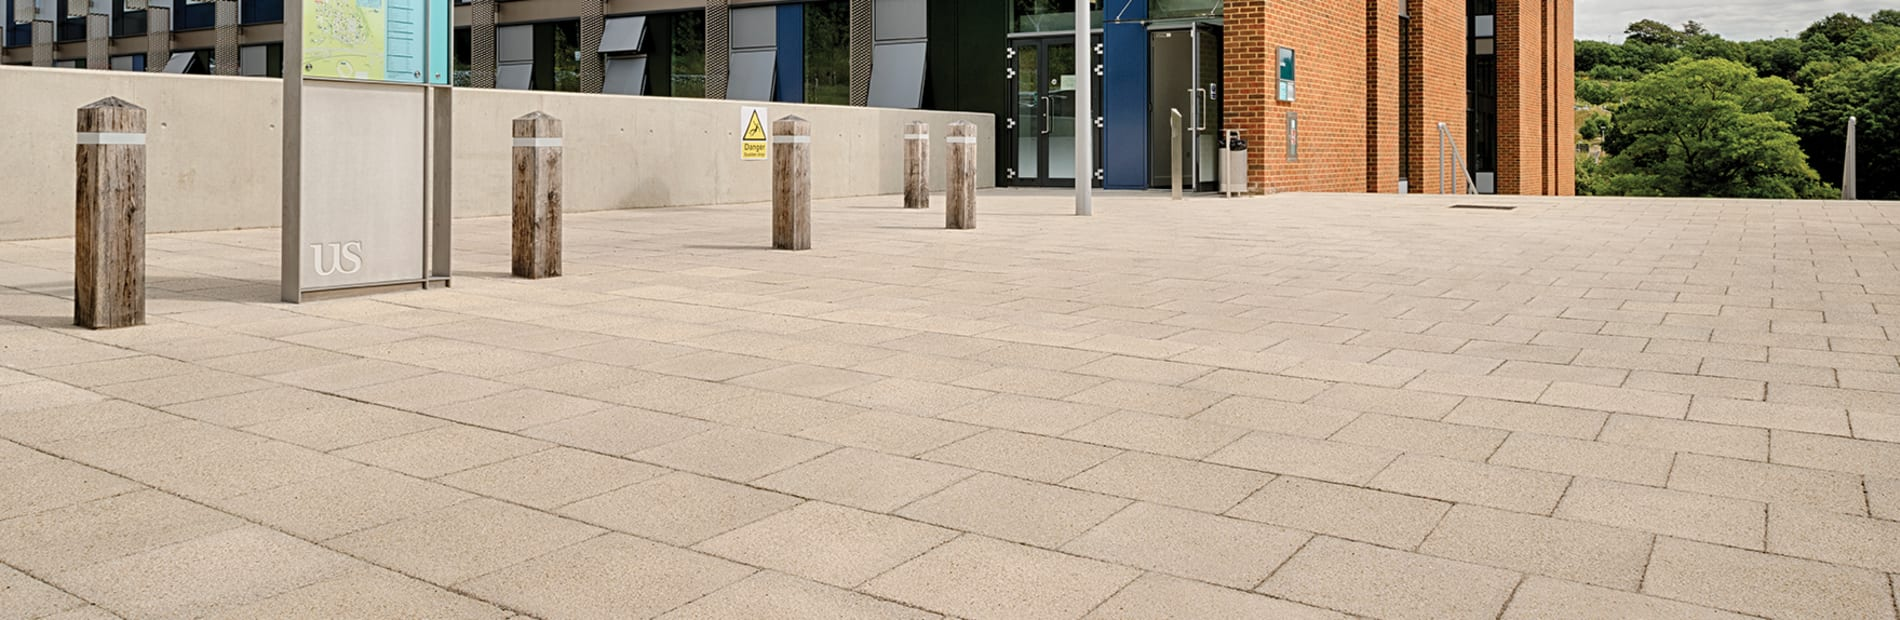 saxon textured paving